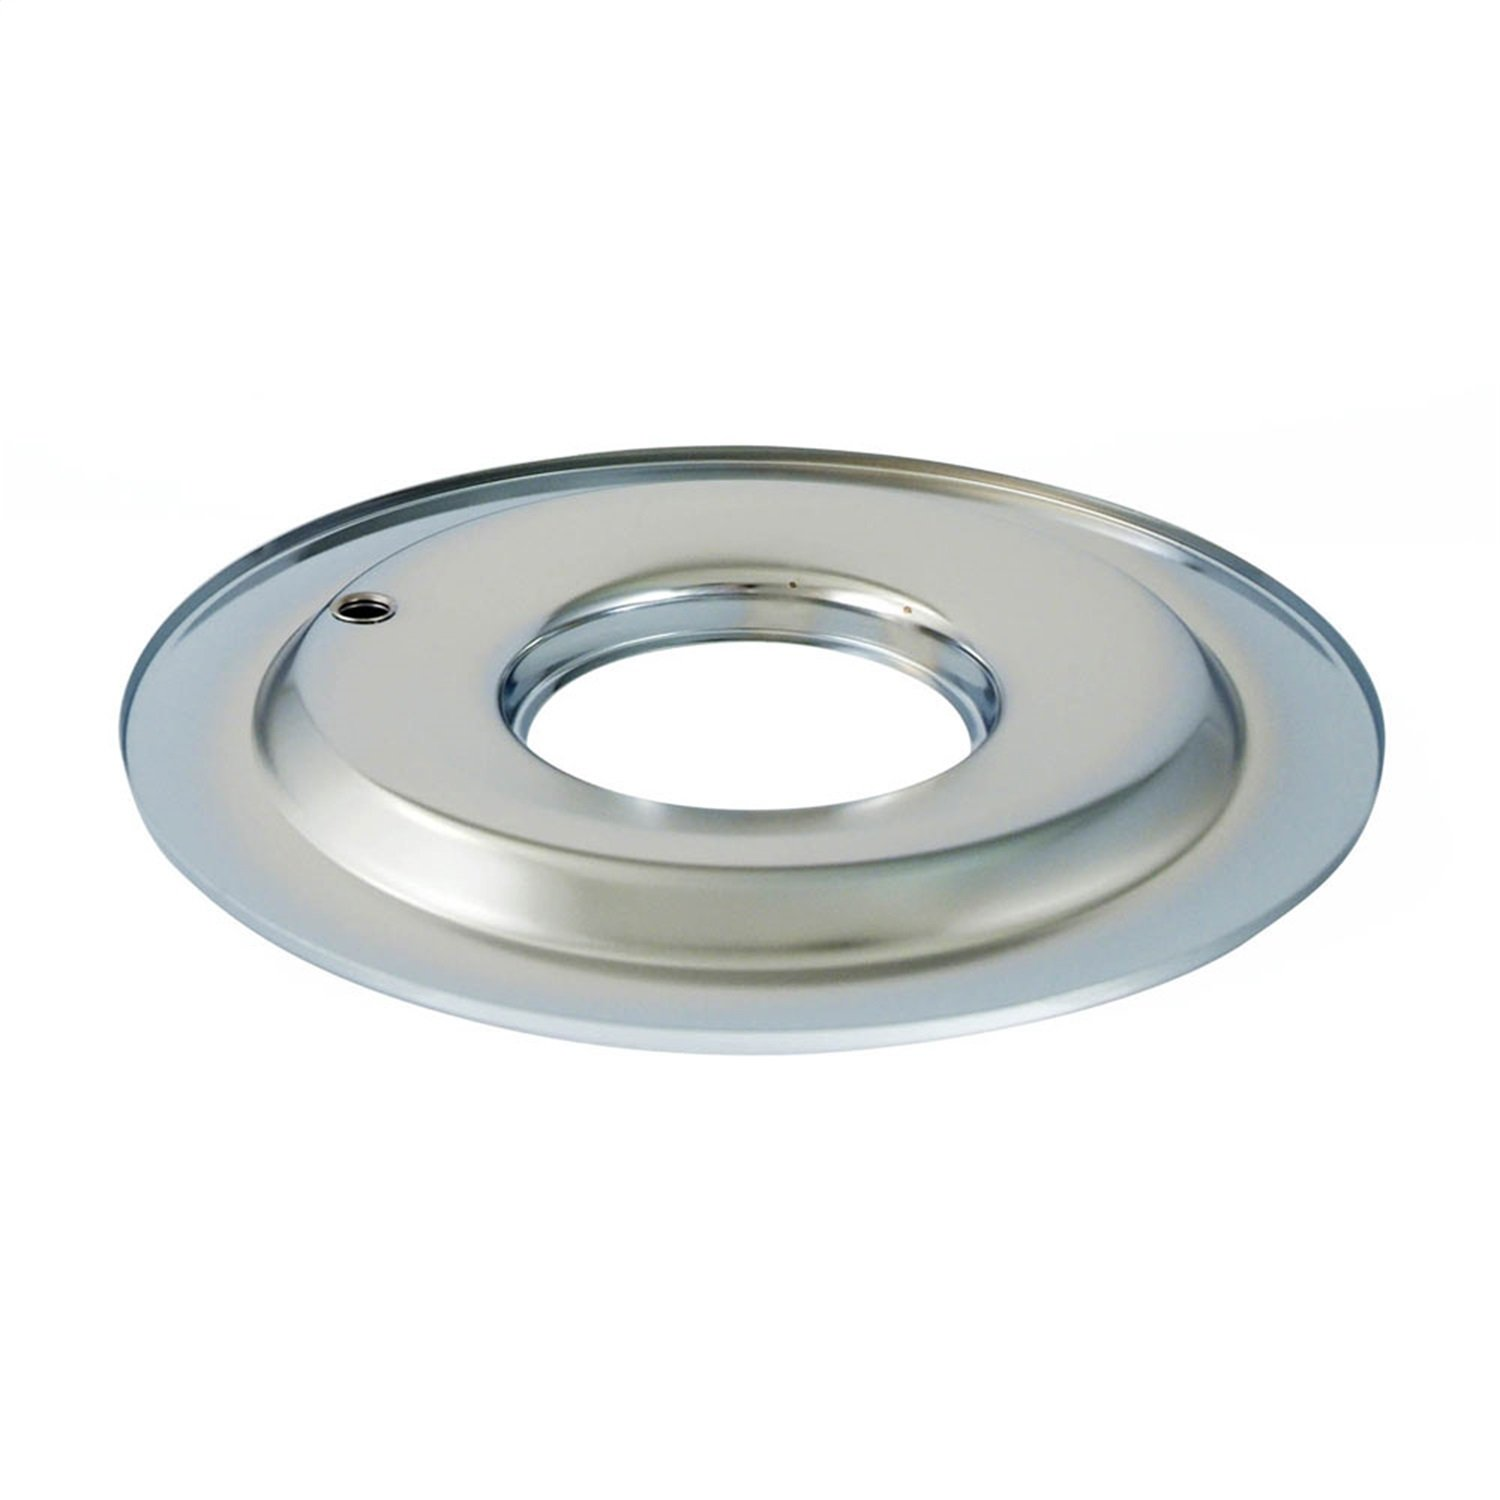 Spectre Performance 4765 14' Flat Air Cleaner Base